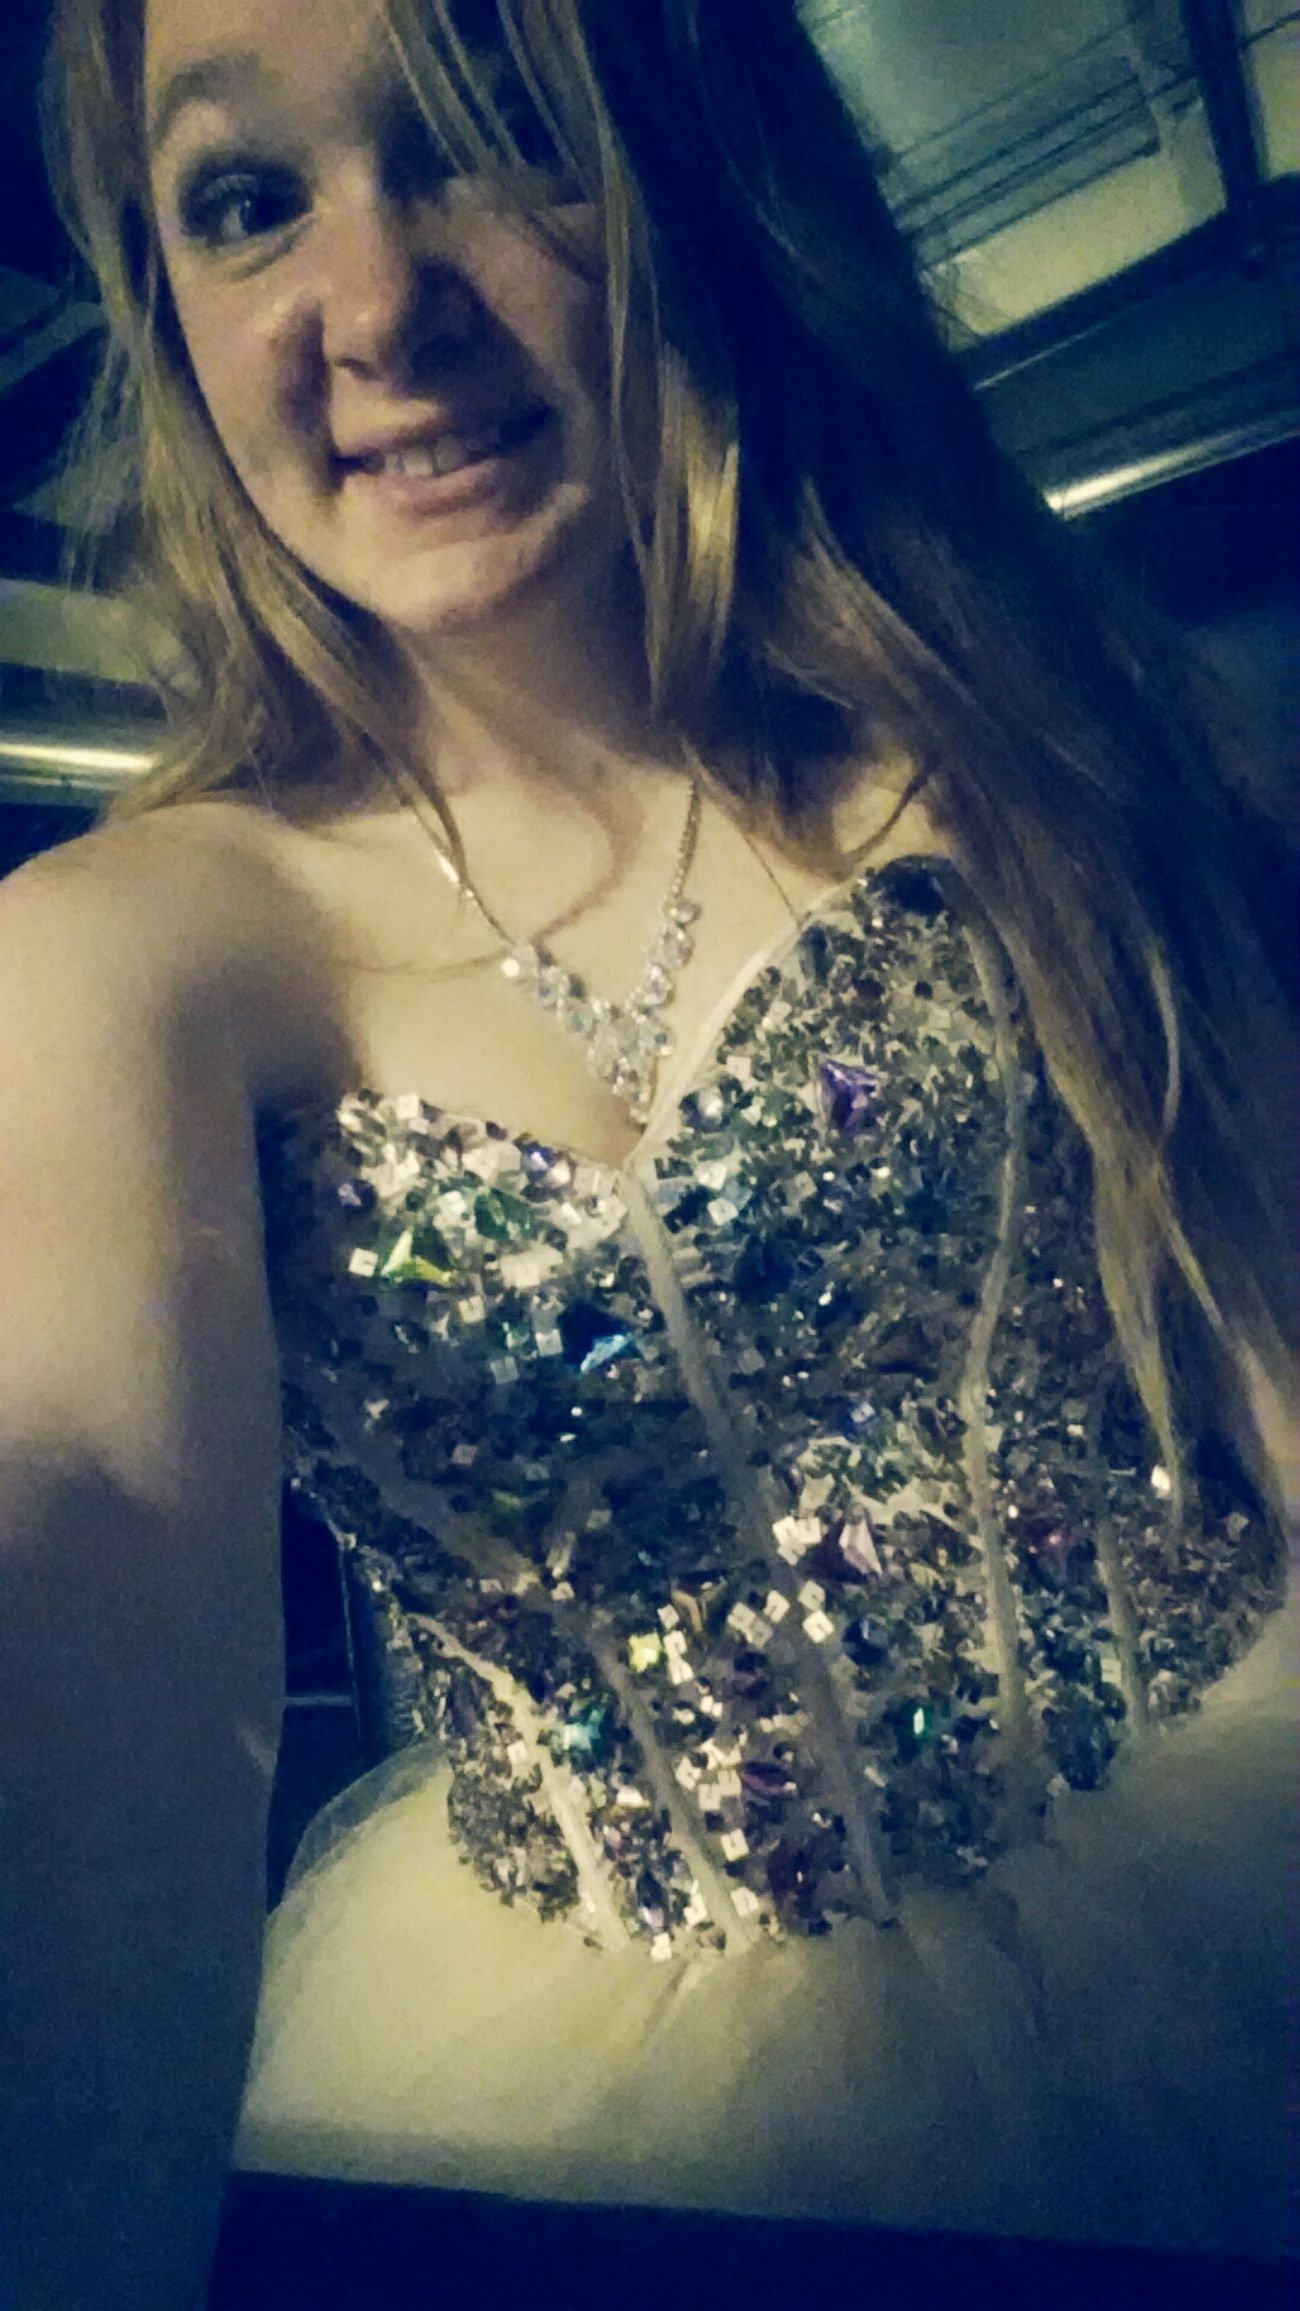 had a good time at the dance .